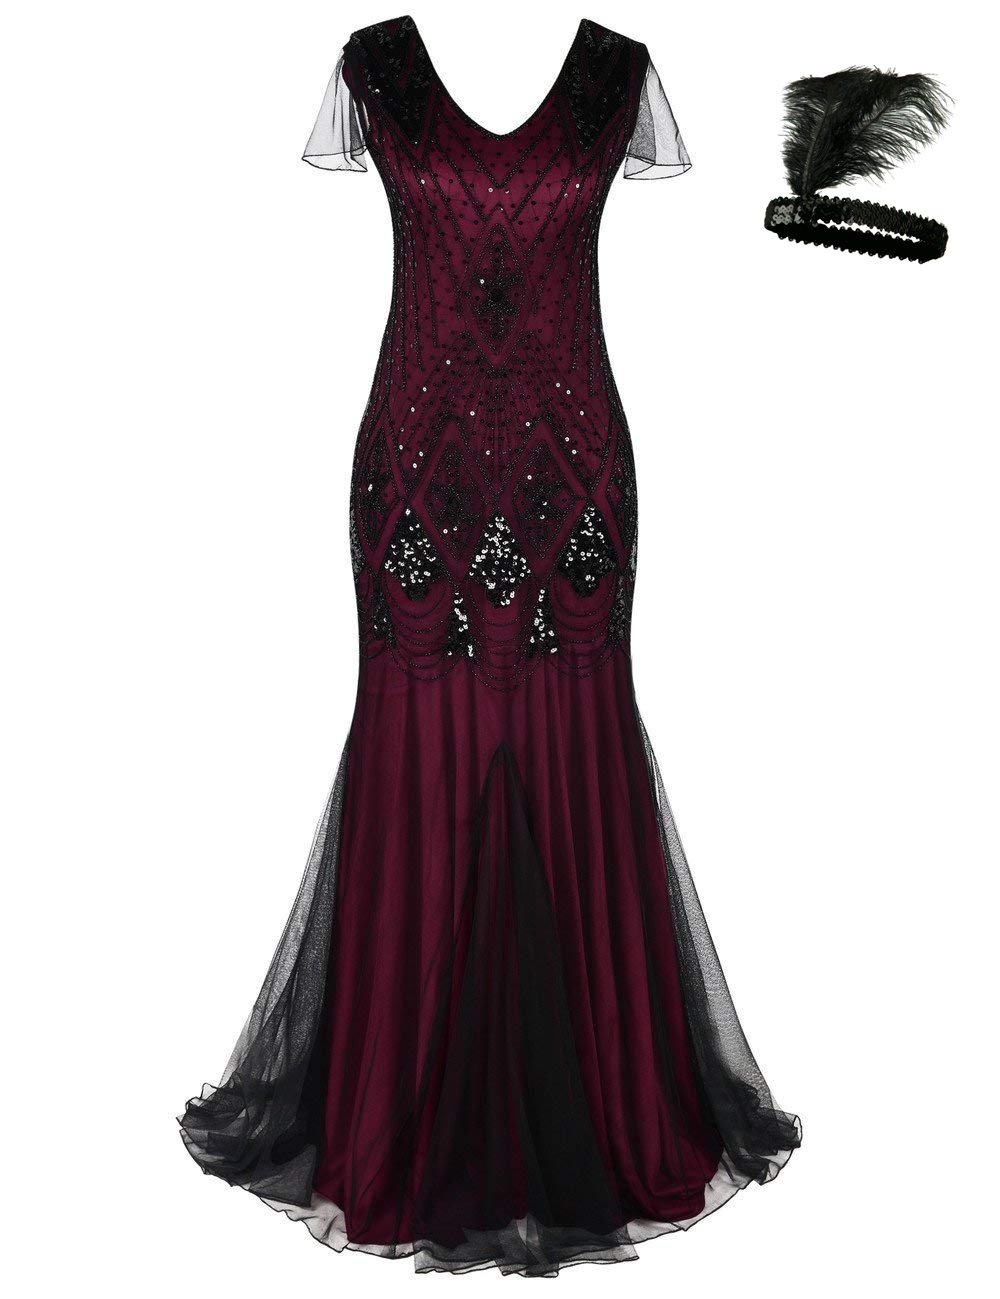 Women 1920s Flapper Cocktail Maxi Long Gatsby Evening Dress Mermaid Formal Gown (red/Black, M)